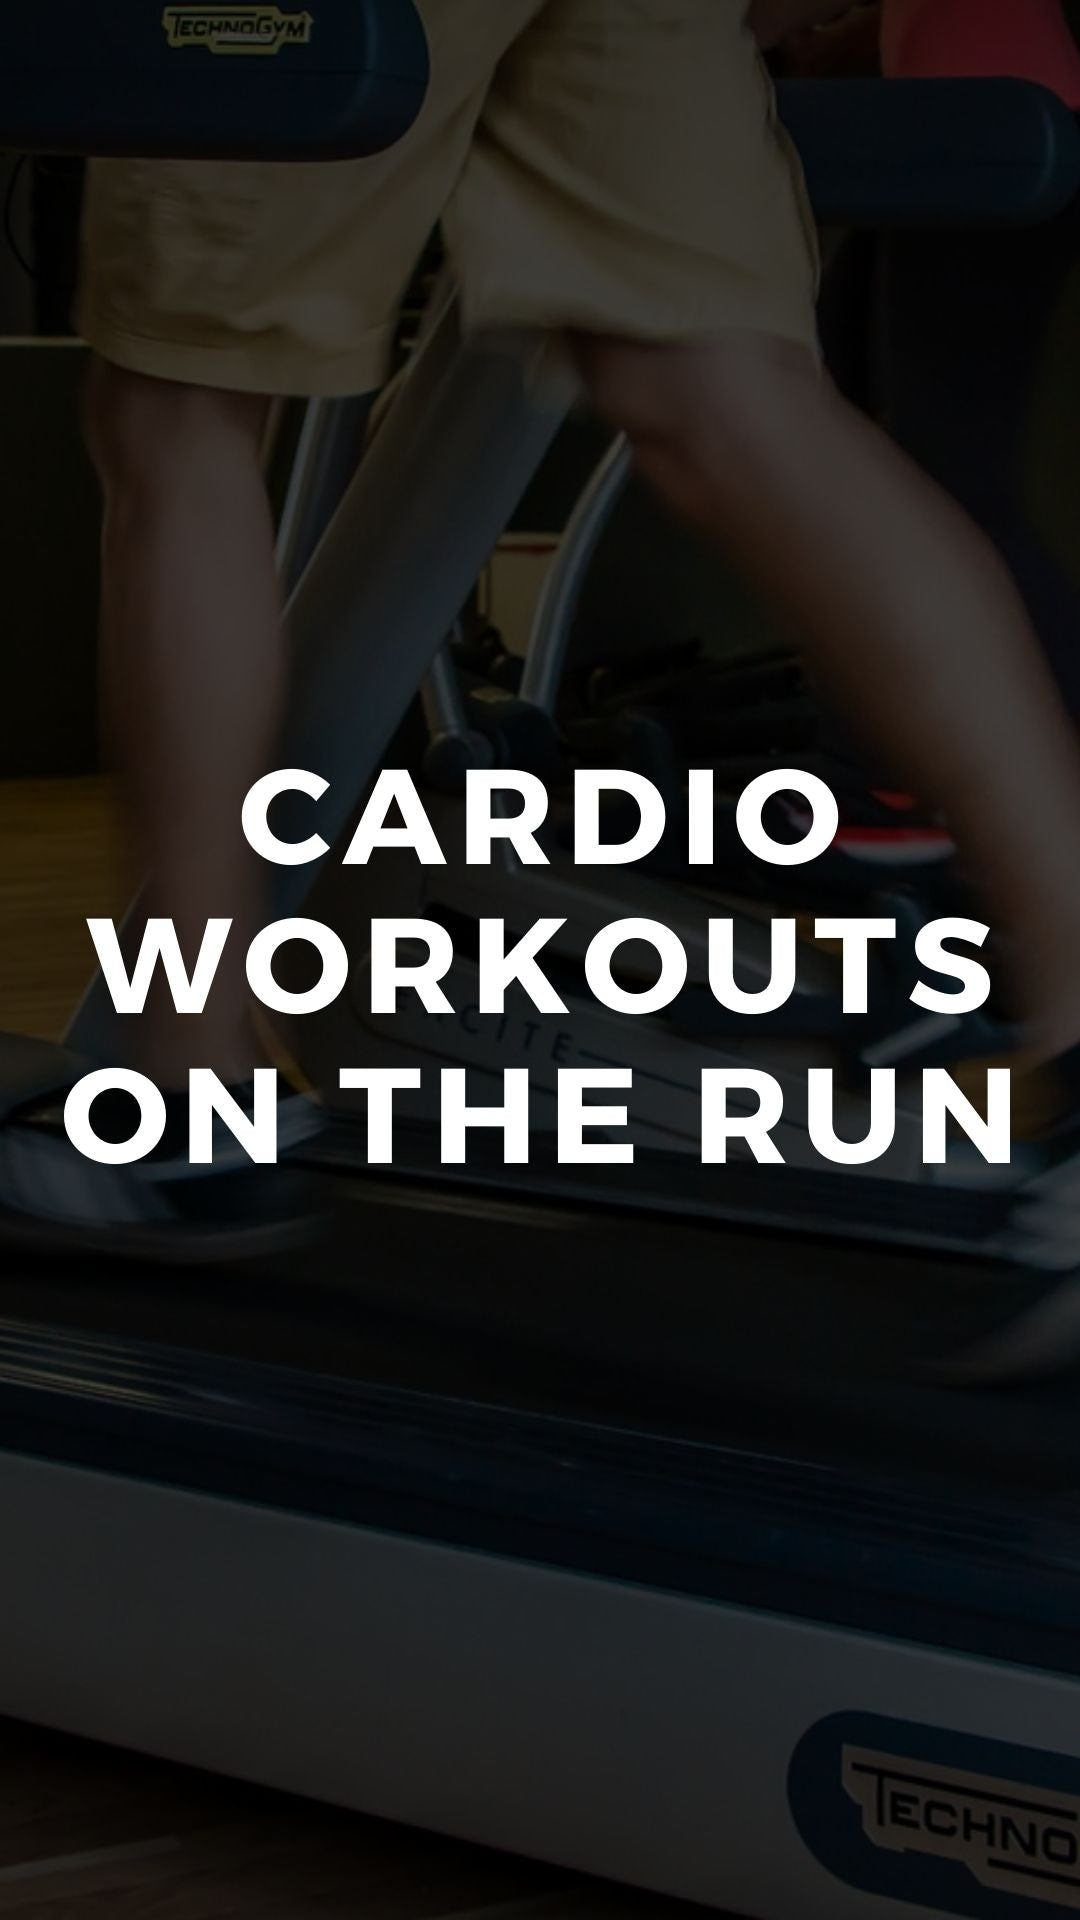 Cardio Workouts On the Run